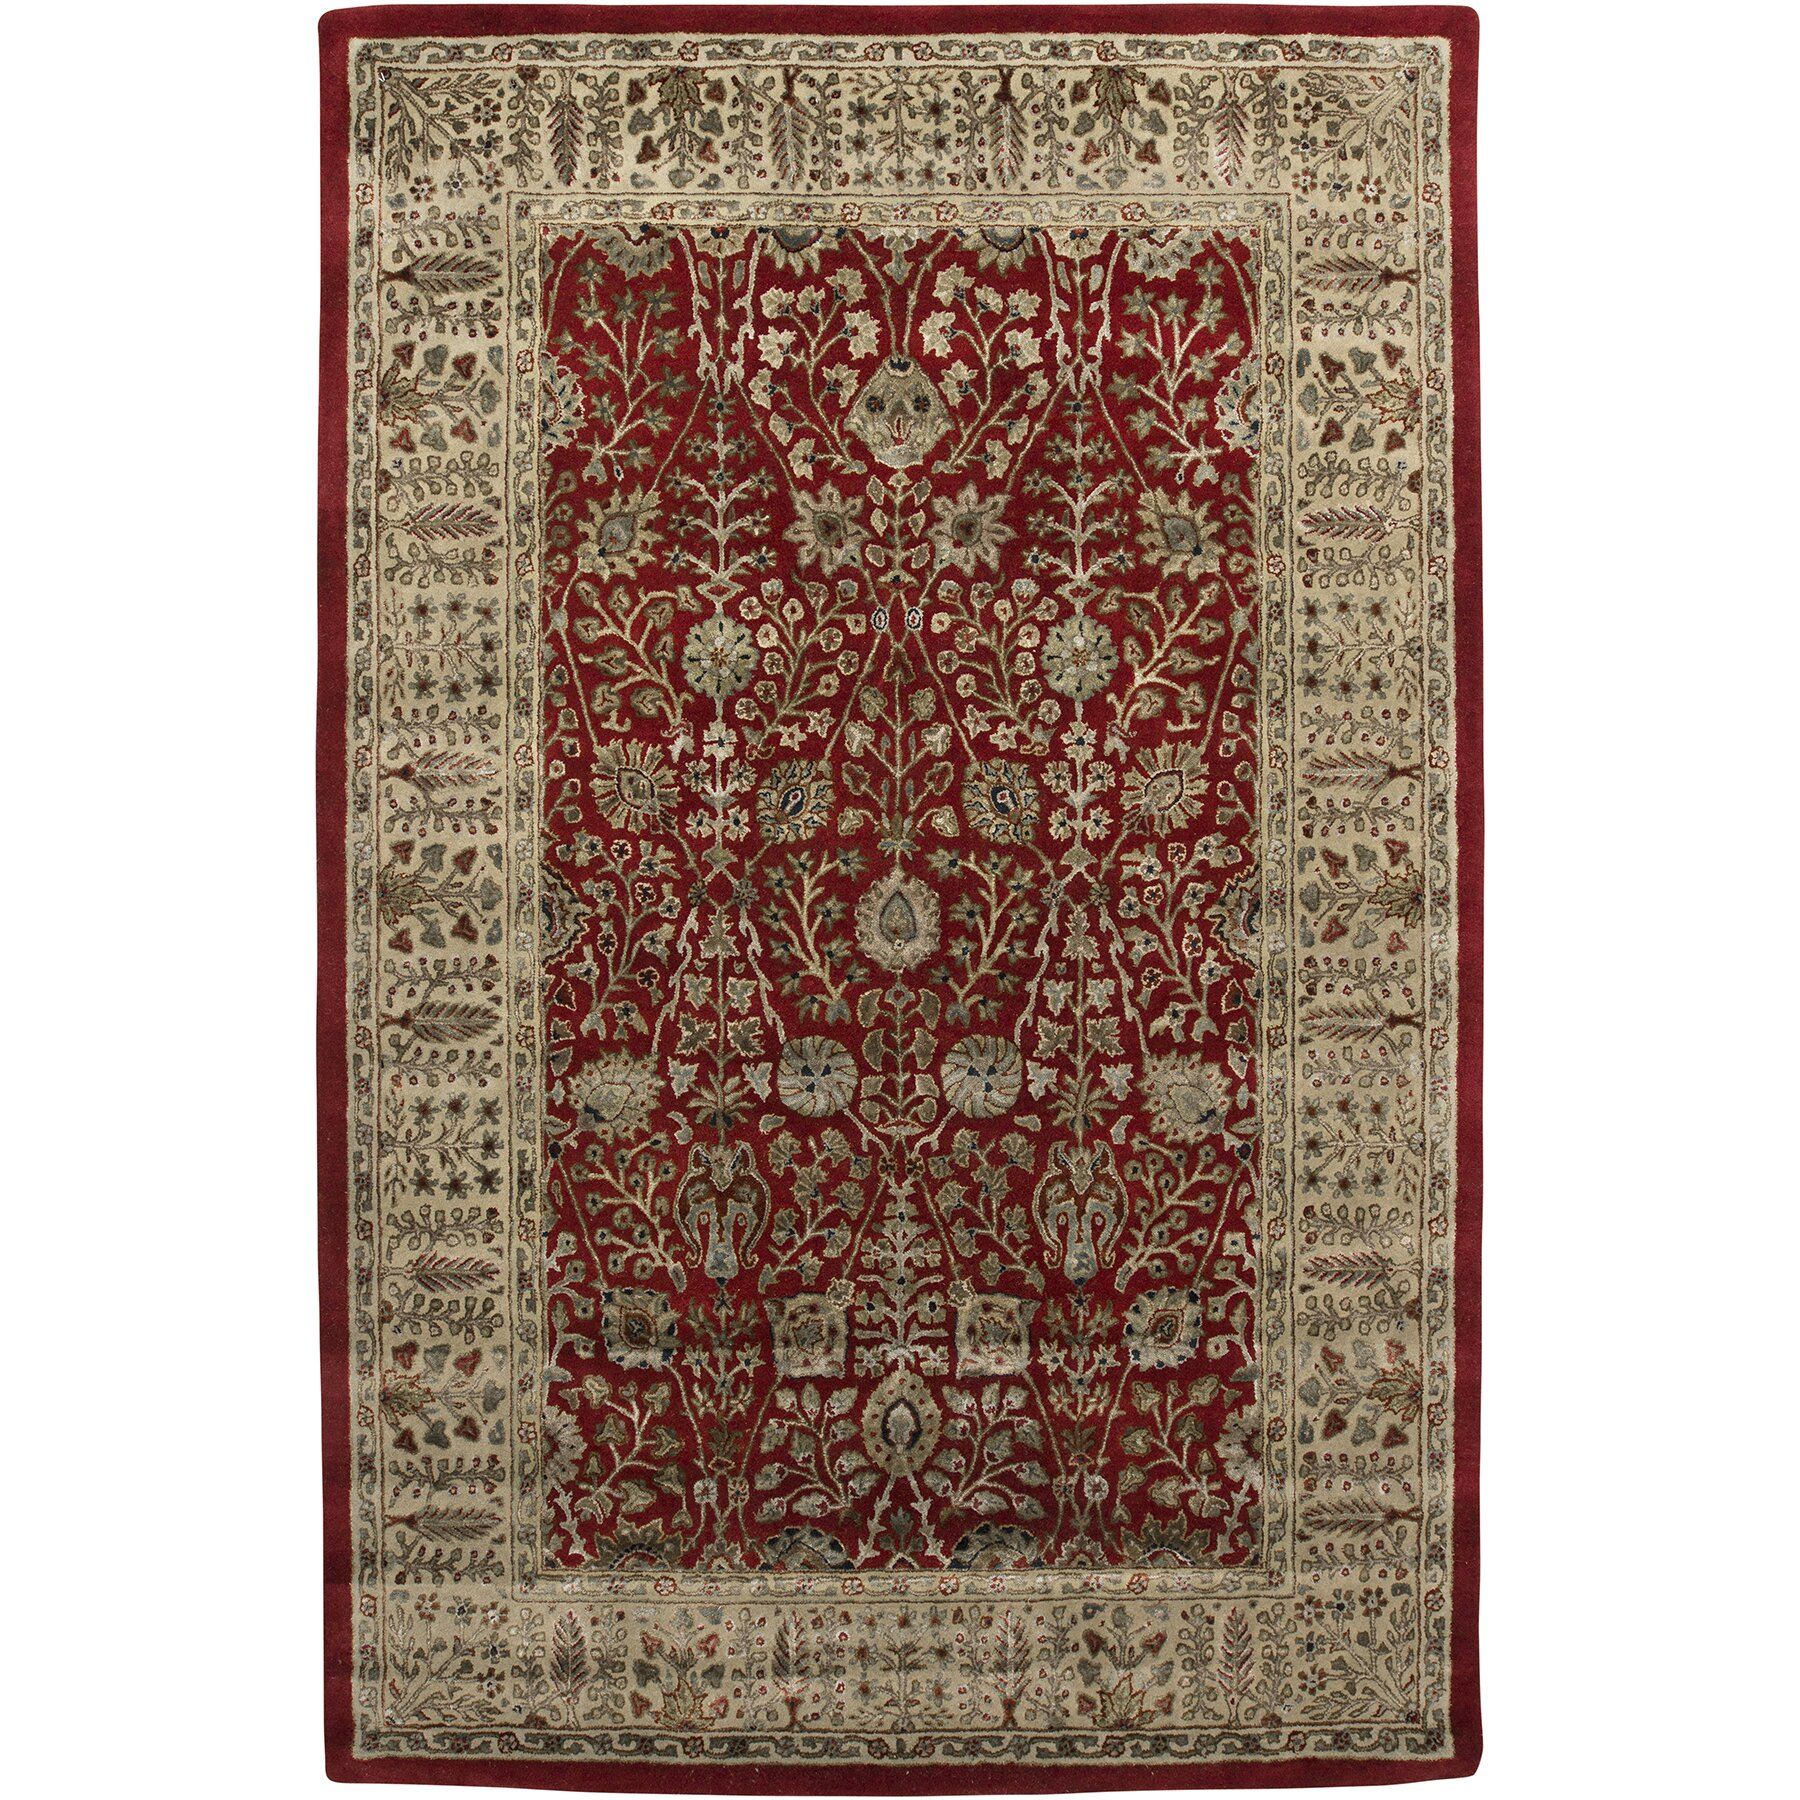 Amer rugs roshni abhati red gold area rug wayfair for Red and gold area rugs